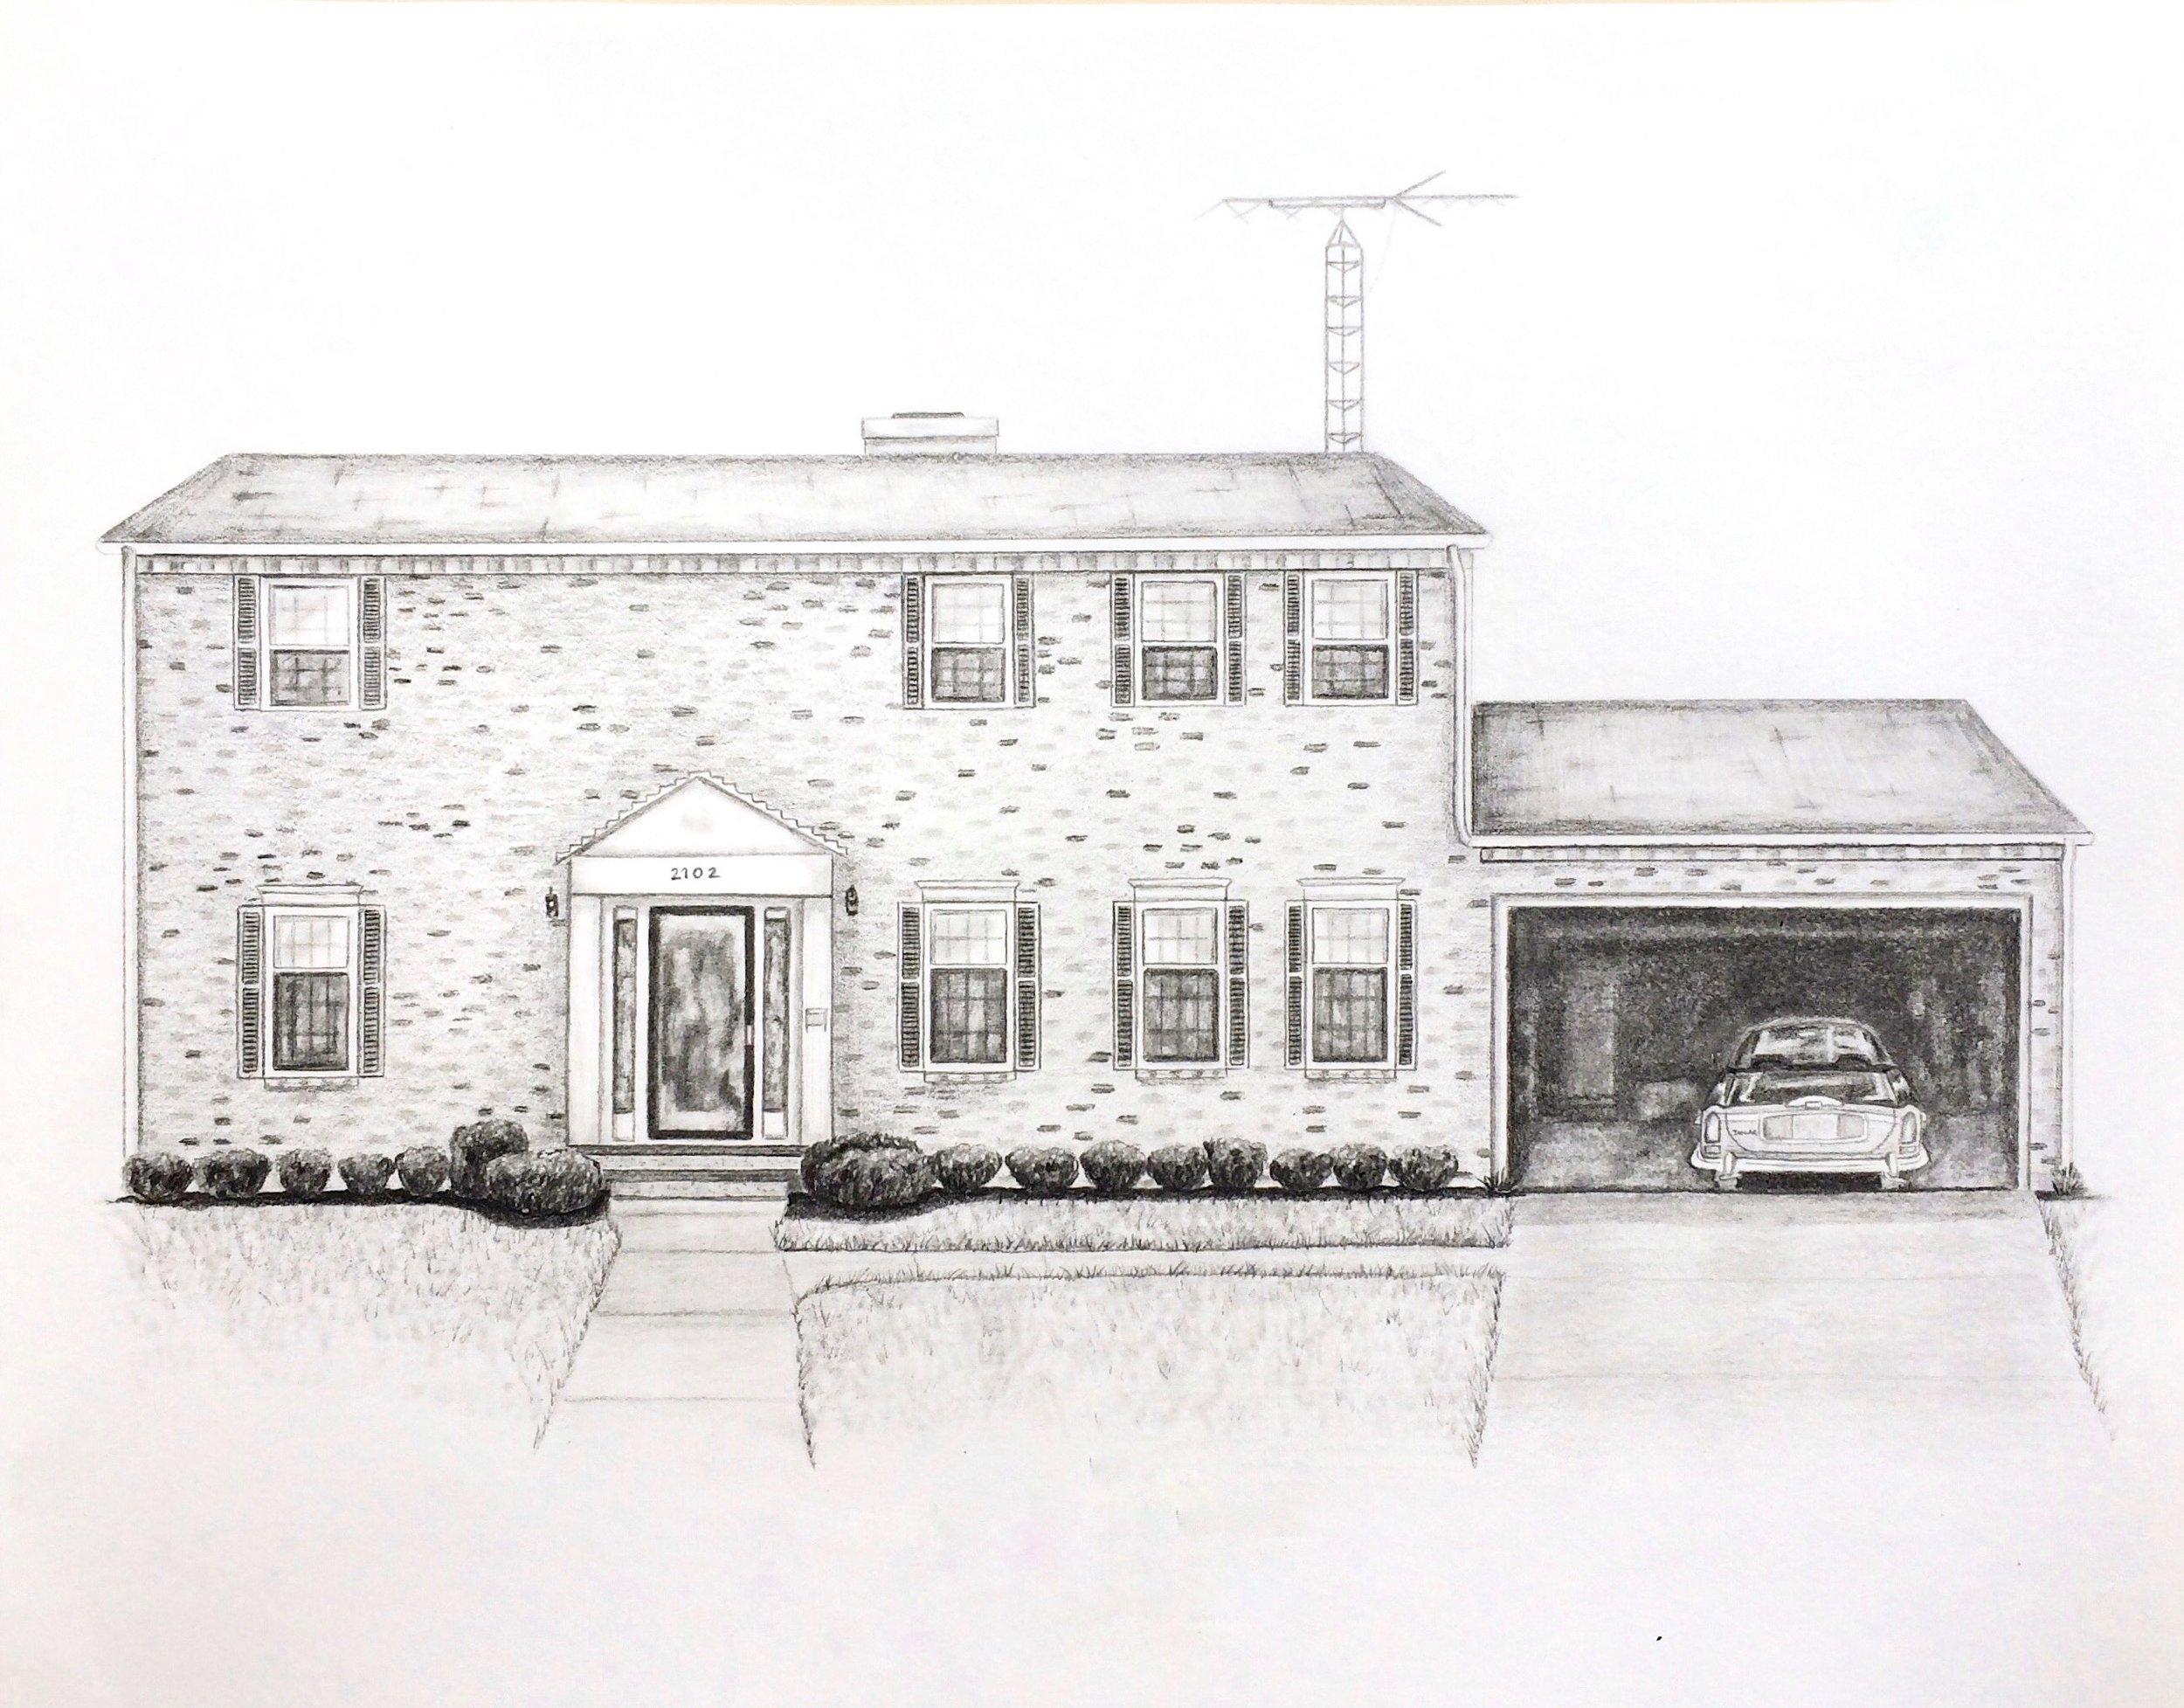 """Tim's Childhood Home, 14""""x11"""", Pencil on Paper, 2016"""